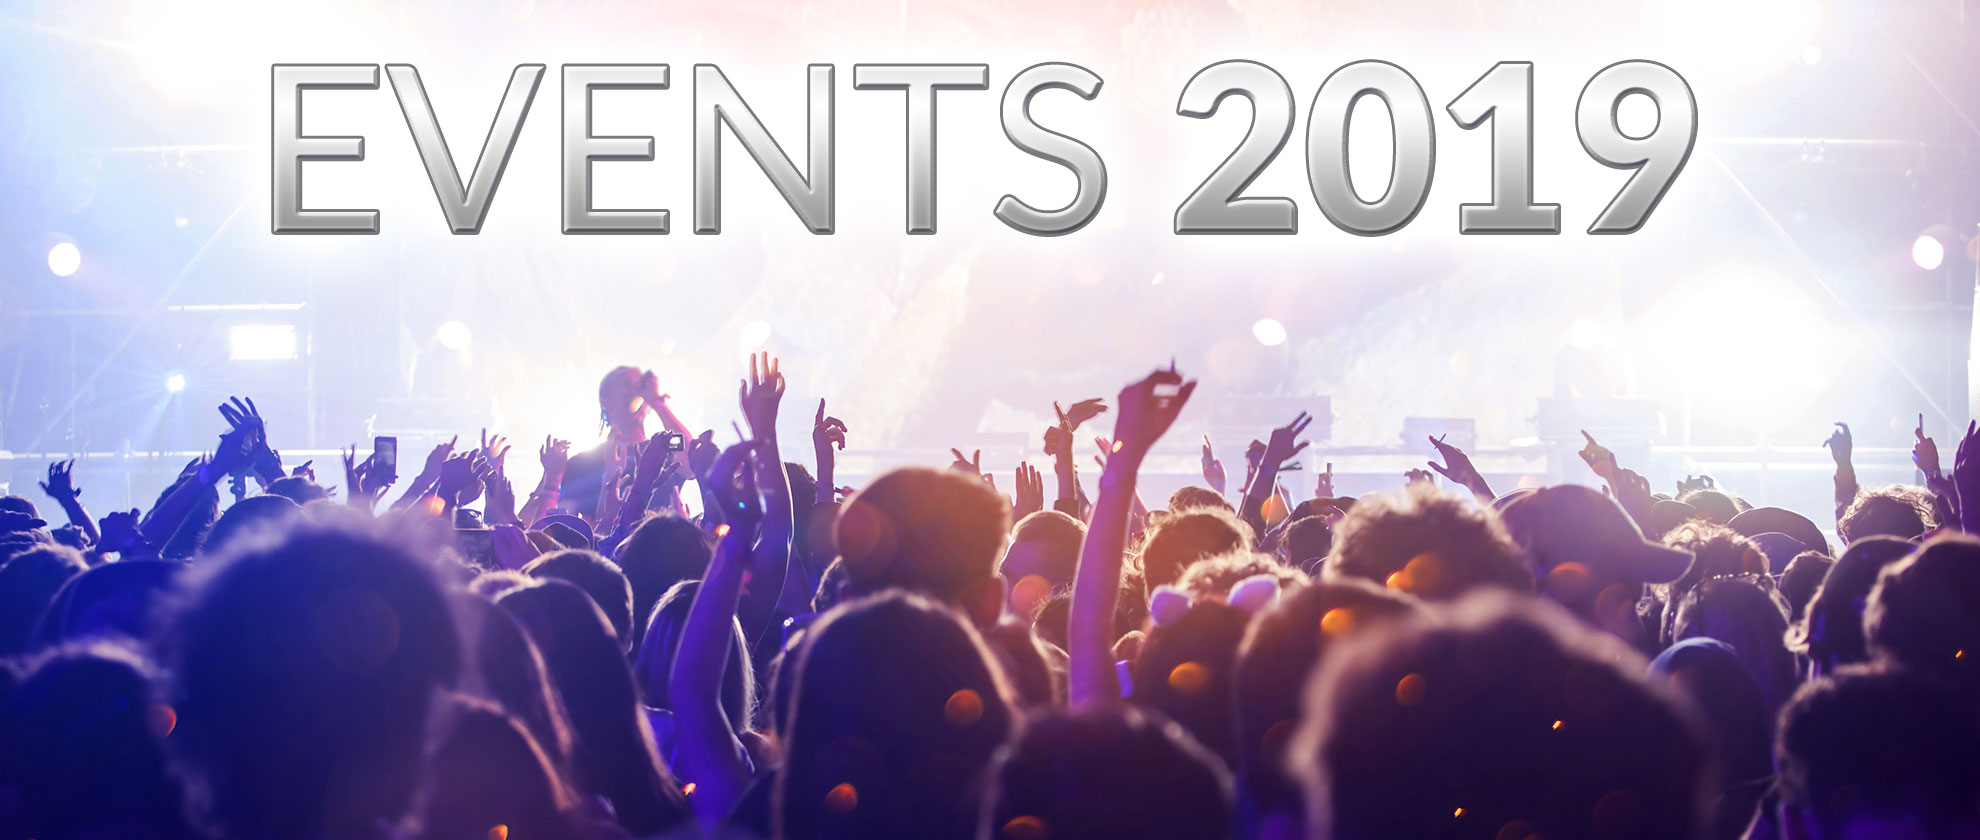 Events for 2019